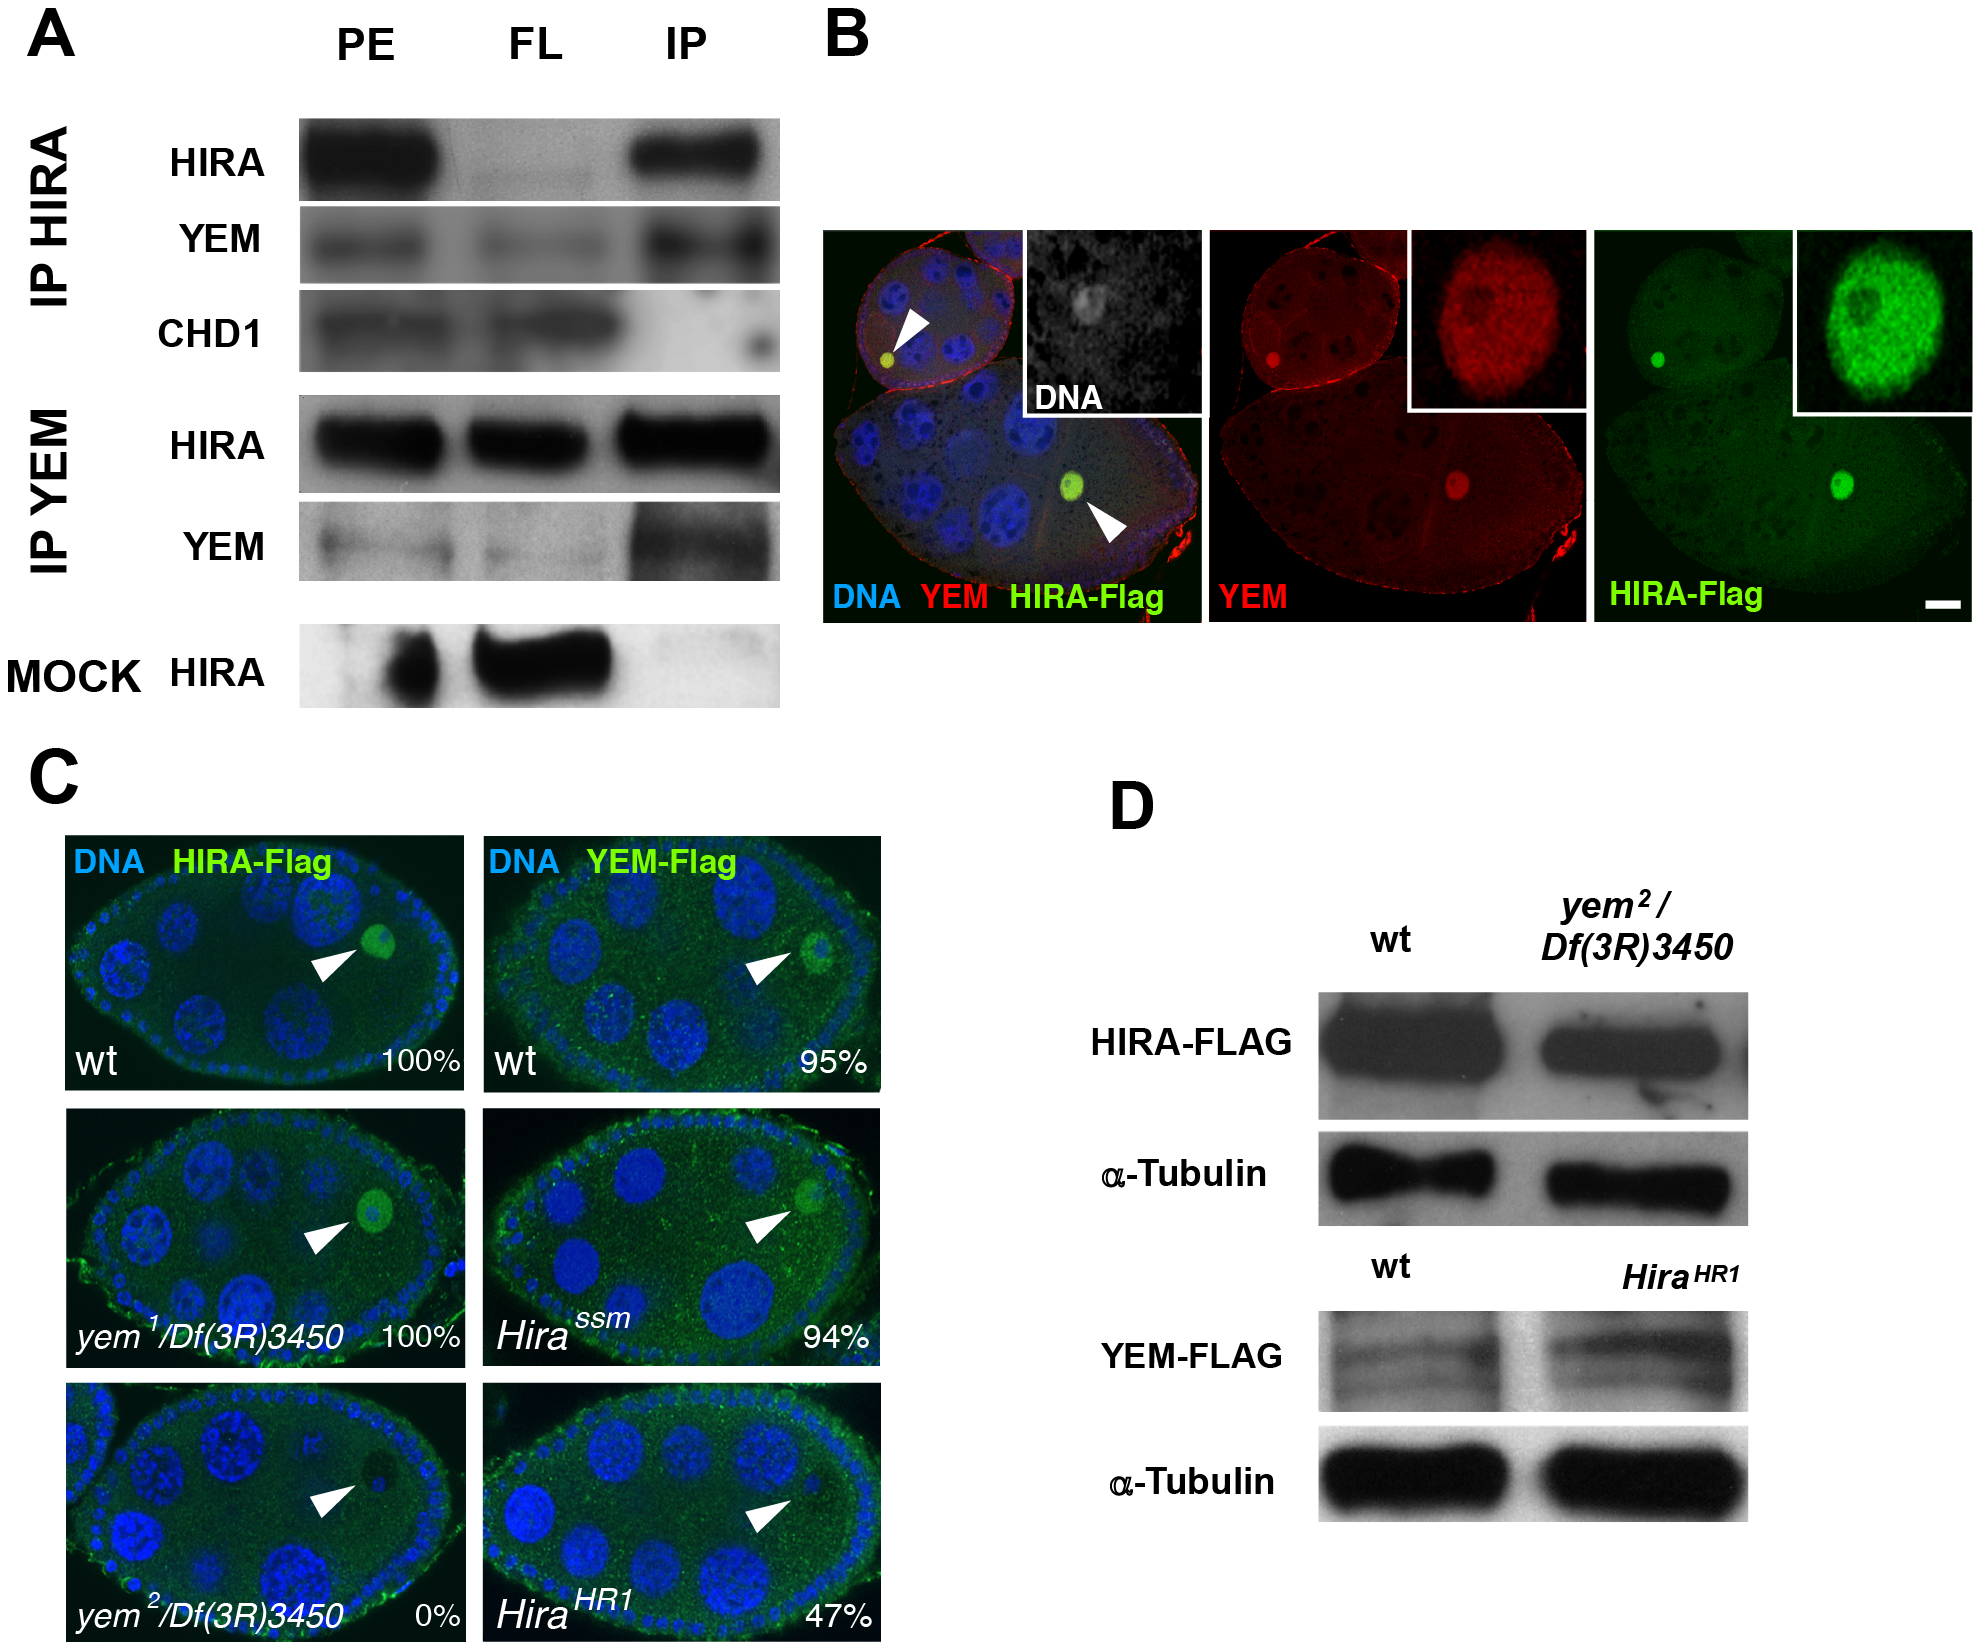 YEM and HIRA are interdependent for their localization in the germinal vesicle.